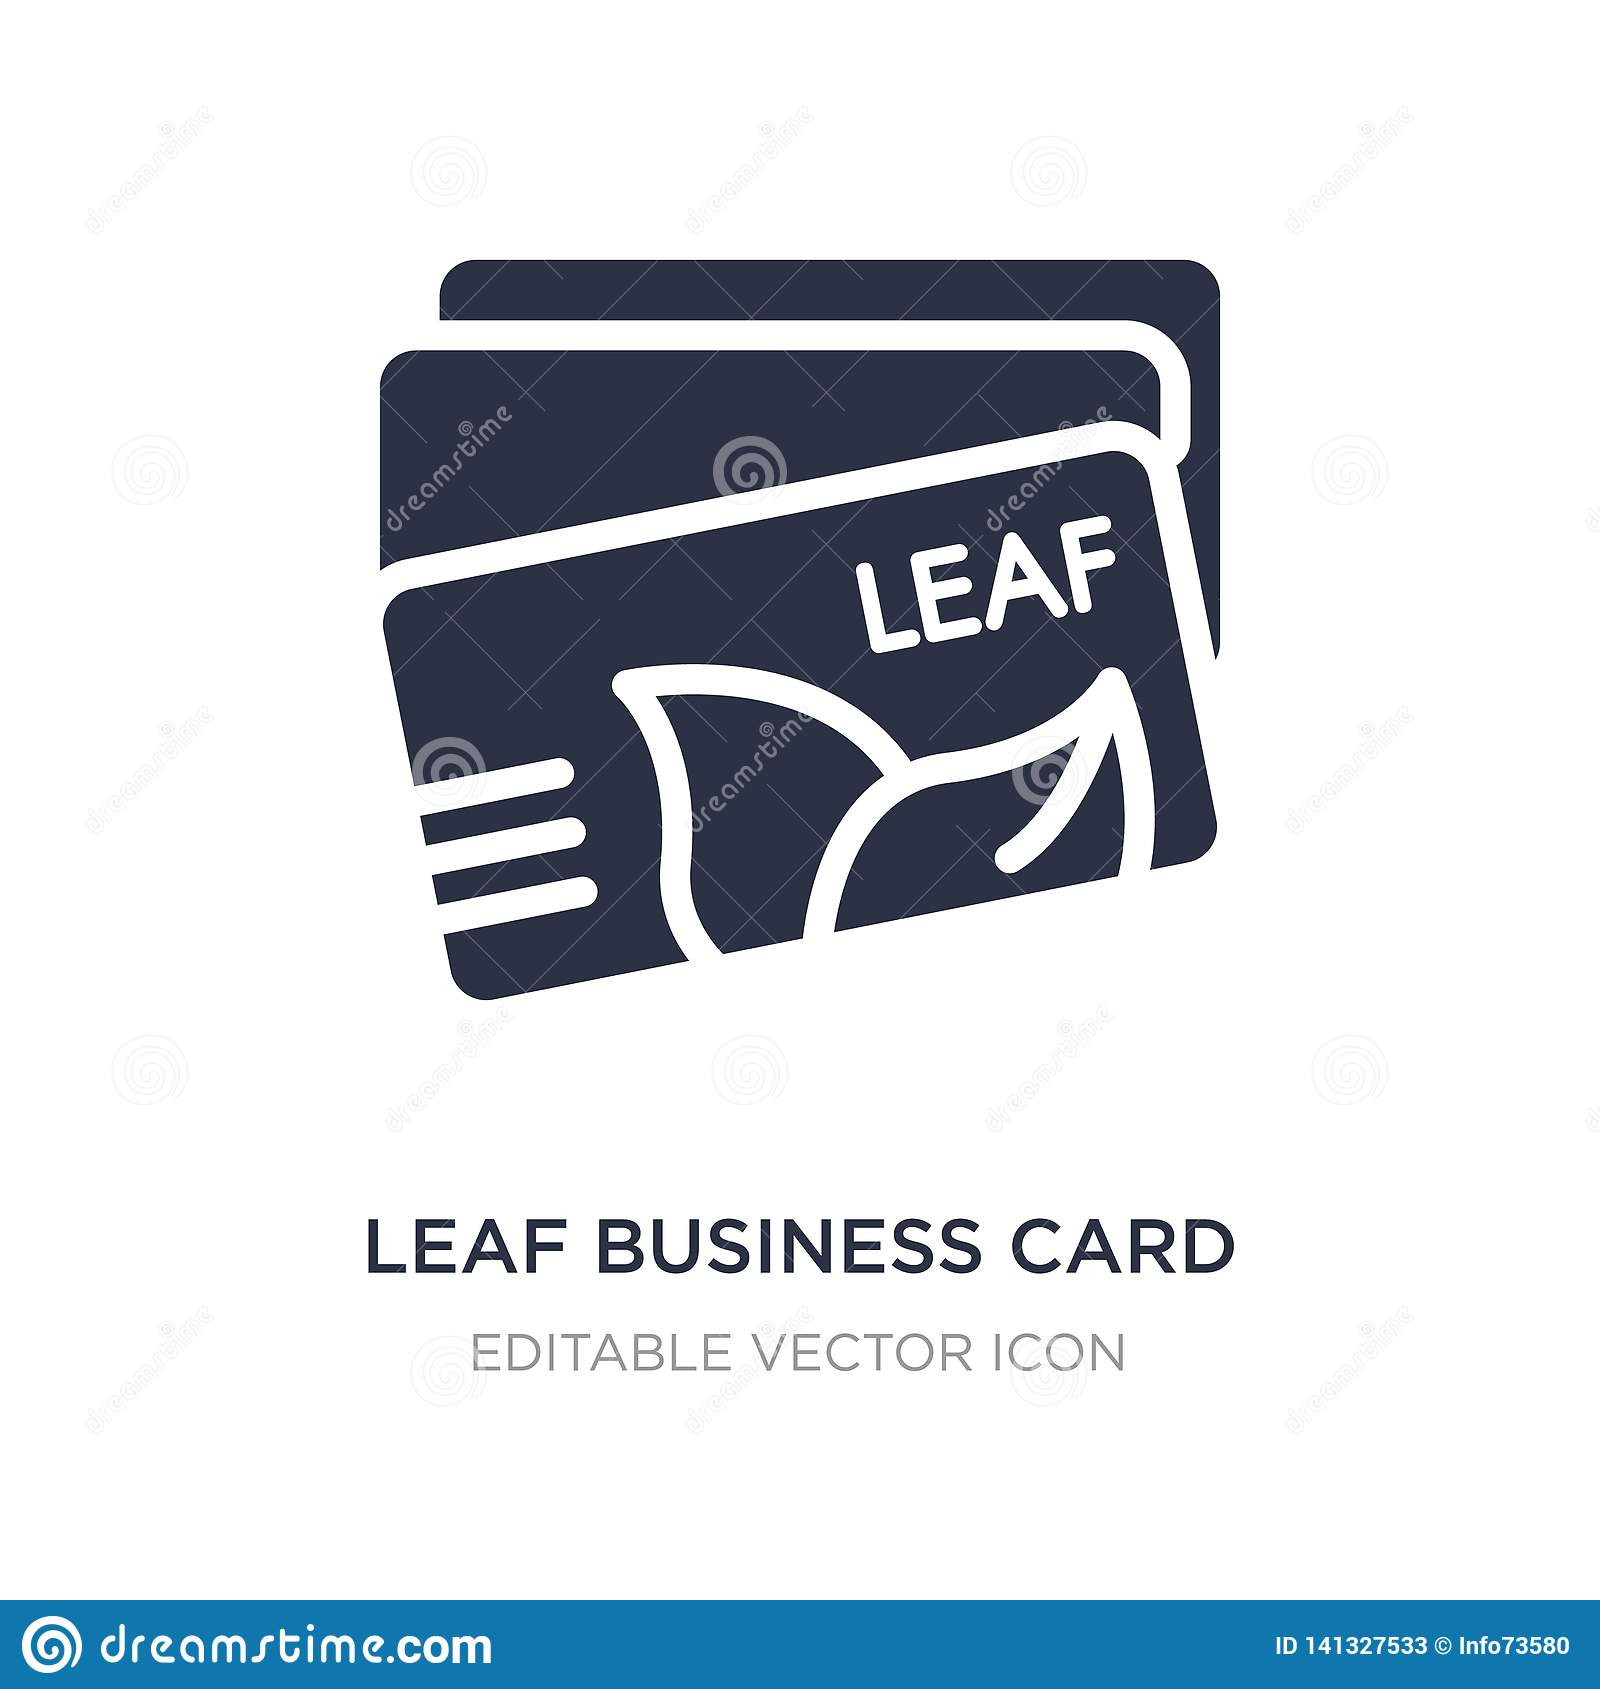 leaf business card icon on white background. Simple element illustration from Other concept